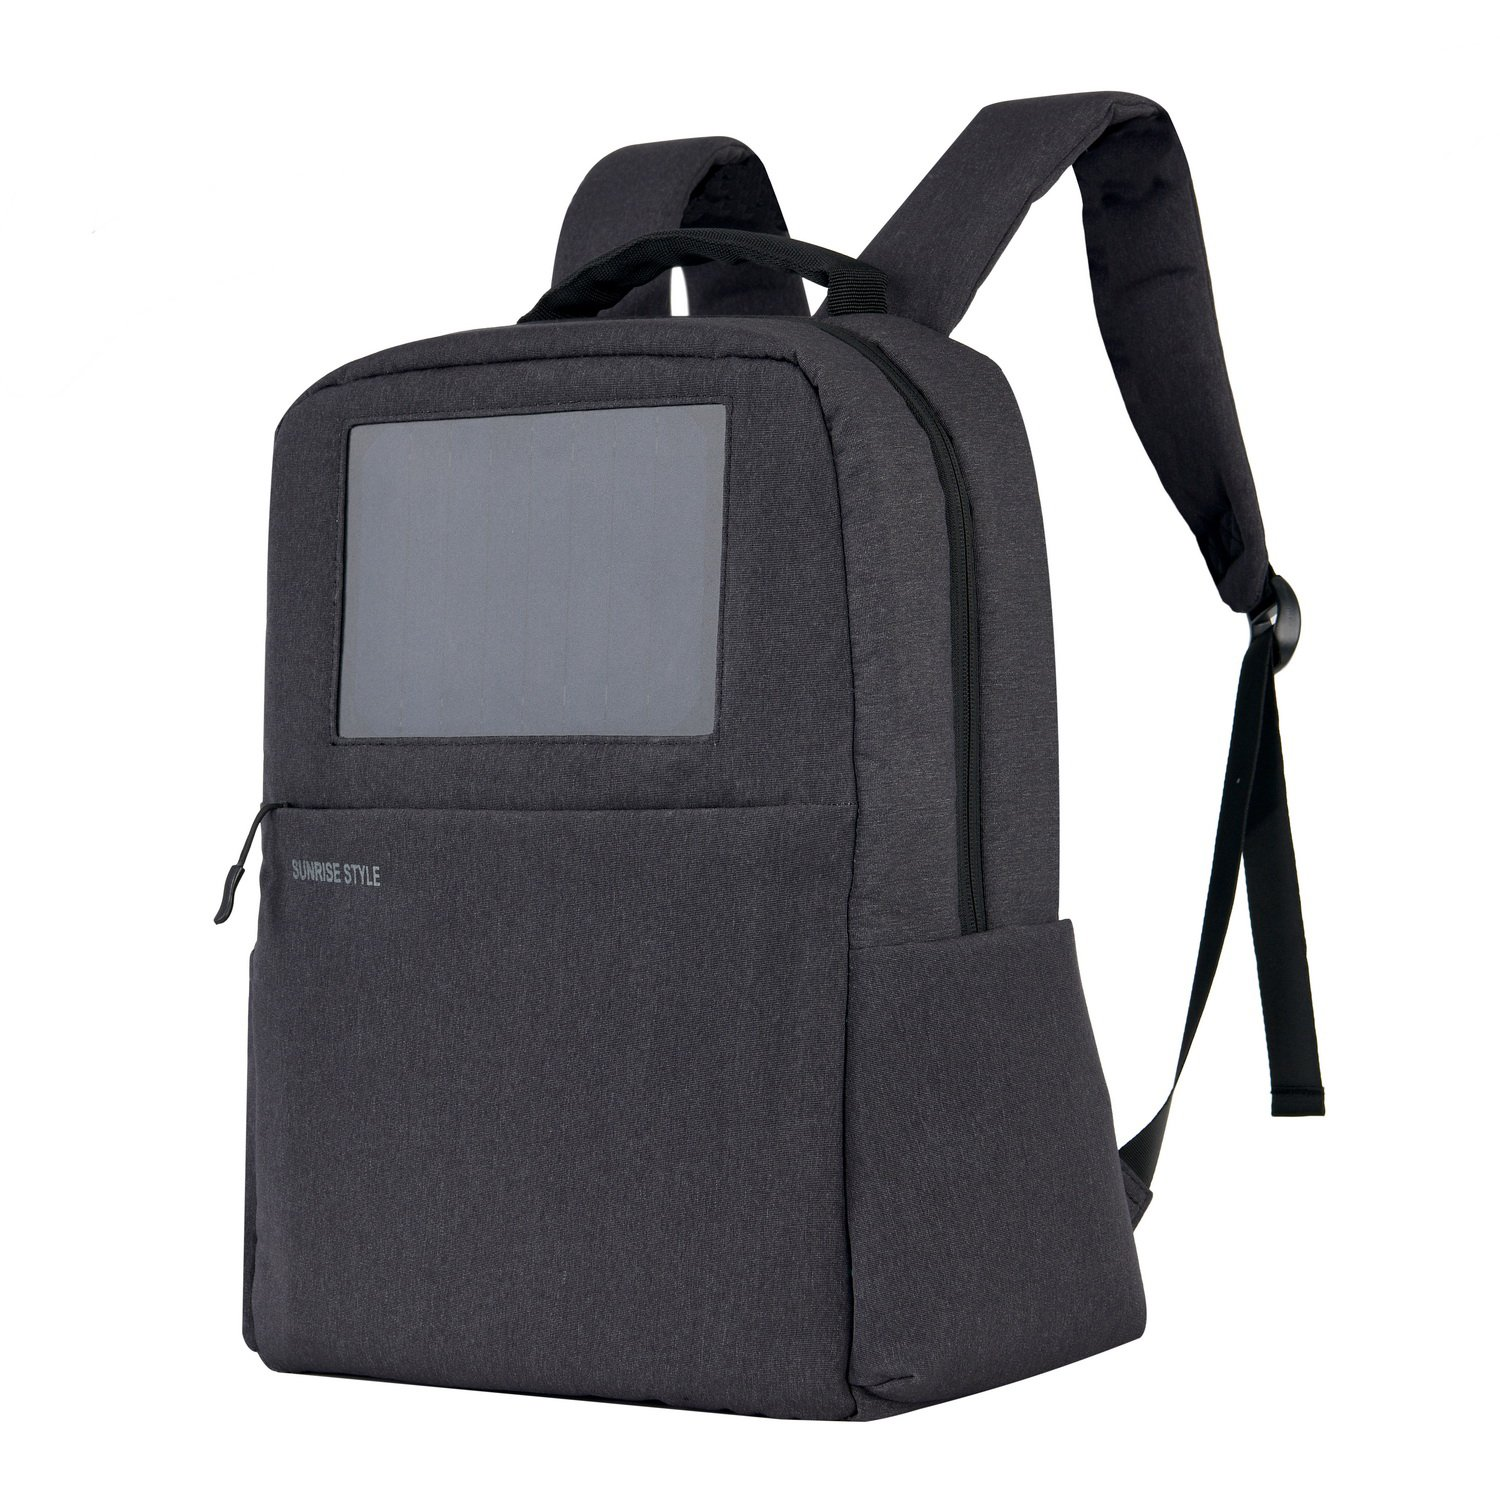 Sunrise Solar Backpack with Built-in Solar Panel and a 4000mAh Power Bank to Charge Smart Phones, Consumer Electronics, an Awesome Pocket for 15.6-Inch Laptop